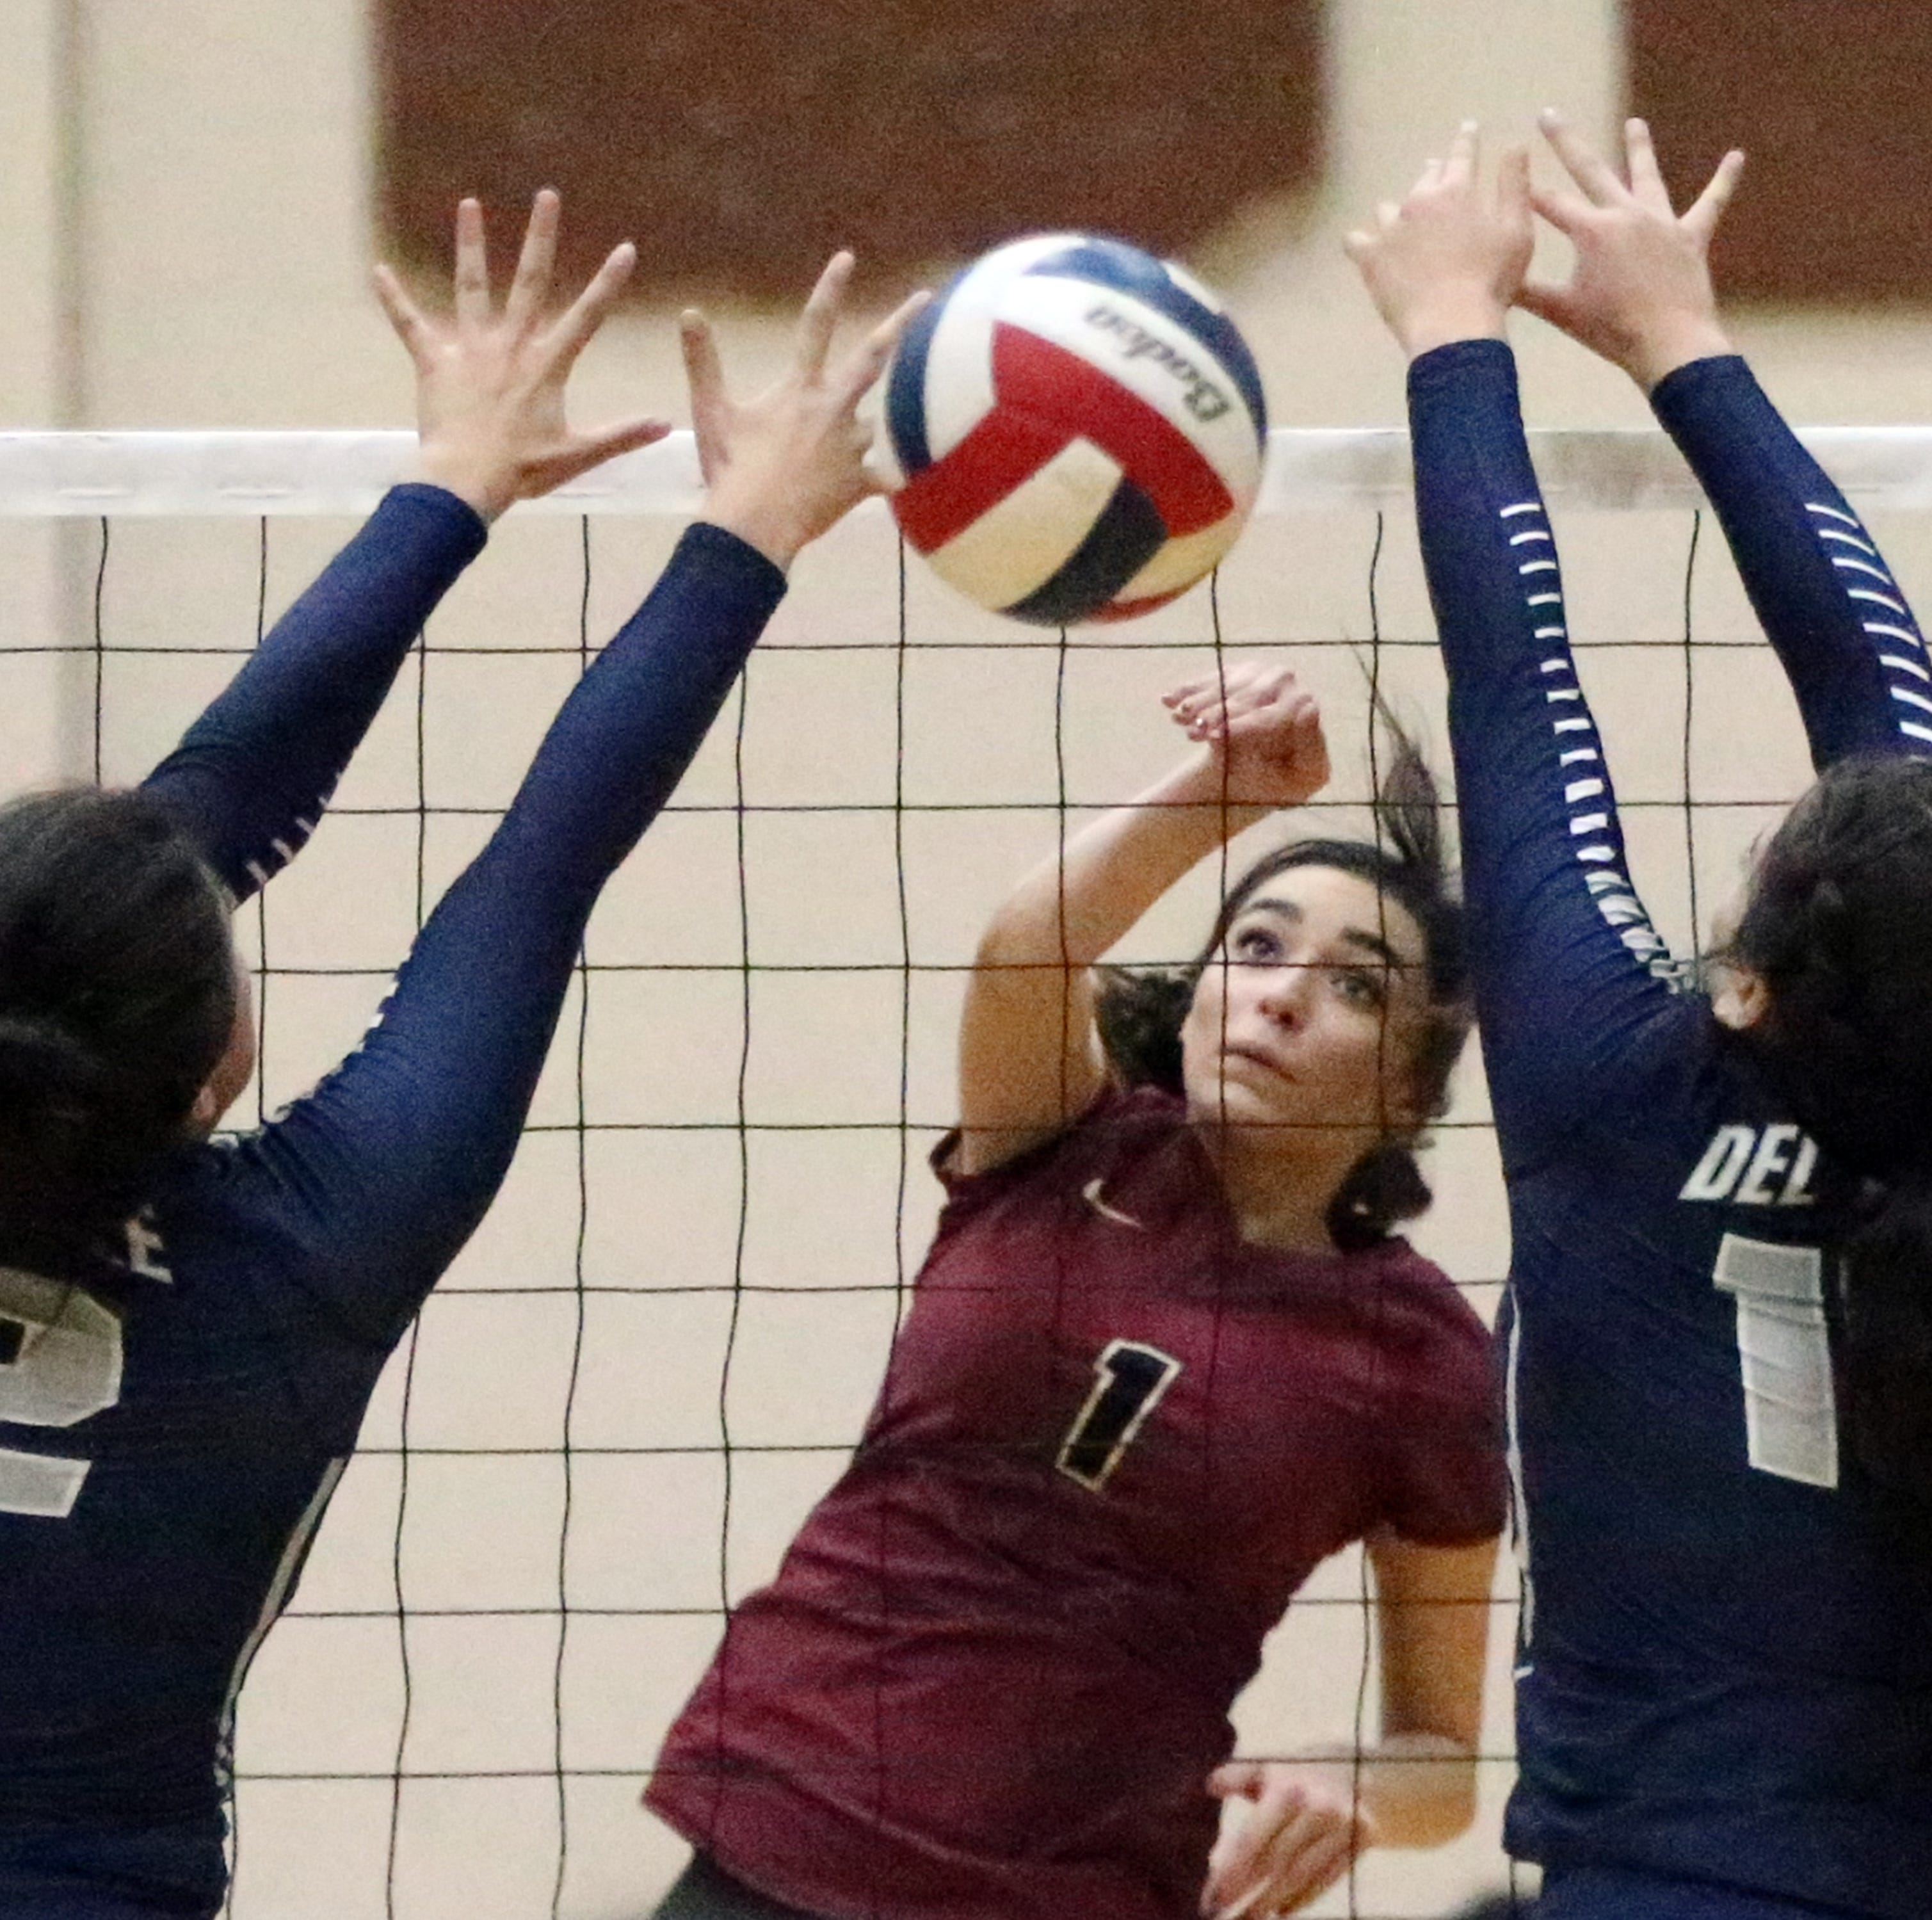 Paig Mcgriff, 1, of El Dorado fires past Del Valle's Madison Valverde, 12, and Natalie Murillo, 15, Tuesday night at Del Valle. El Dorado won the match in three sets.